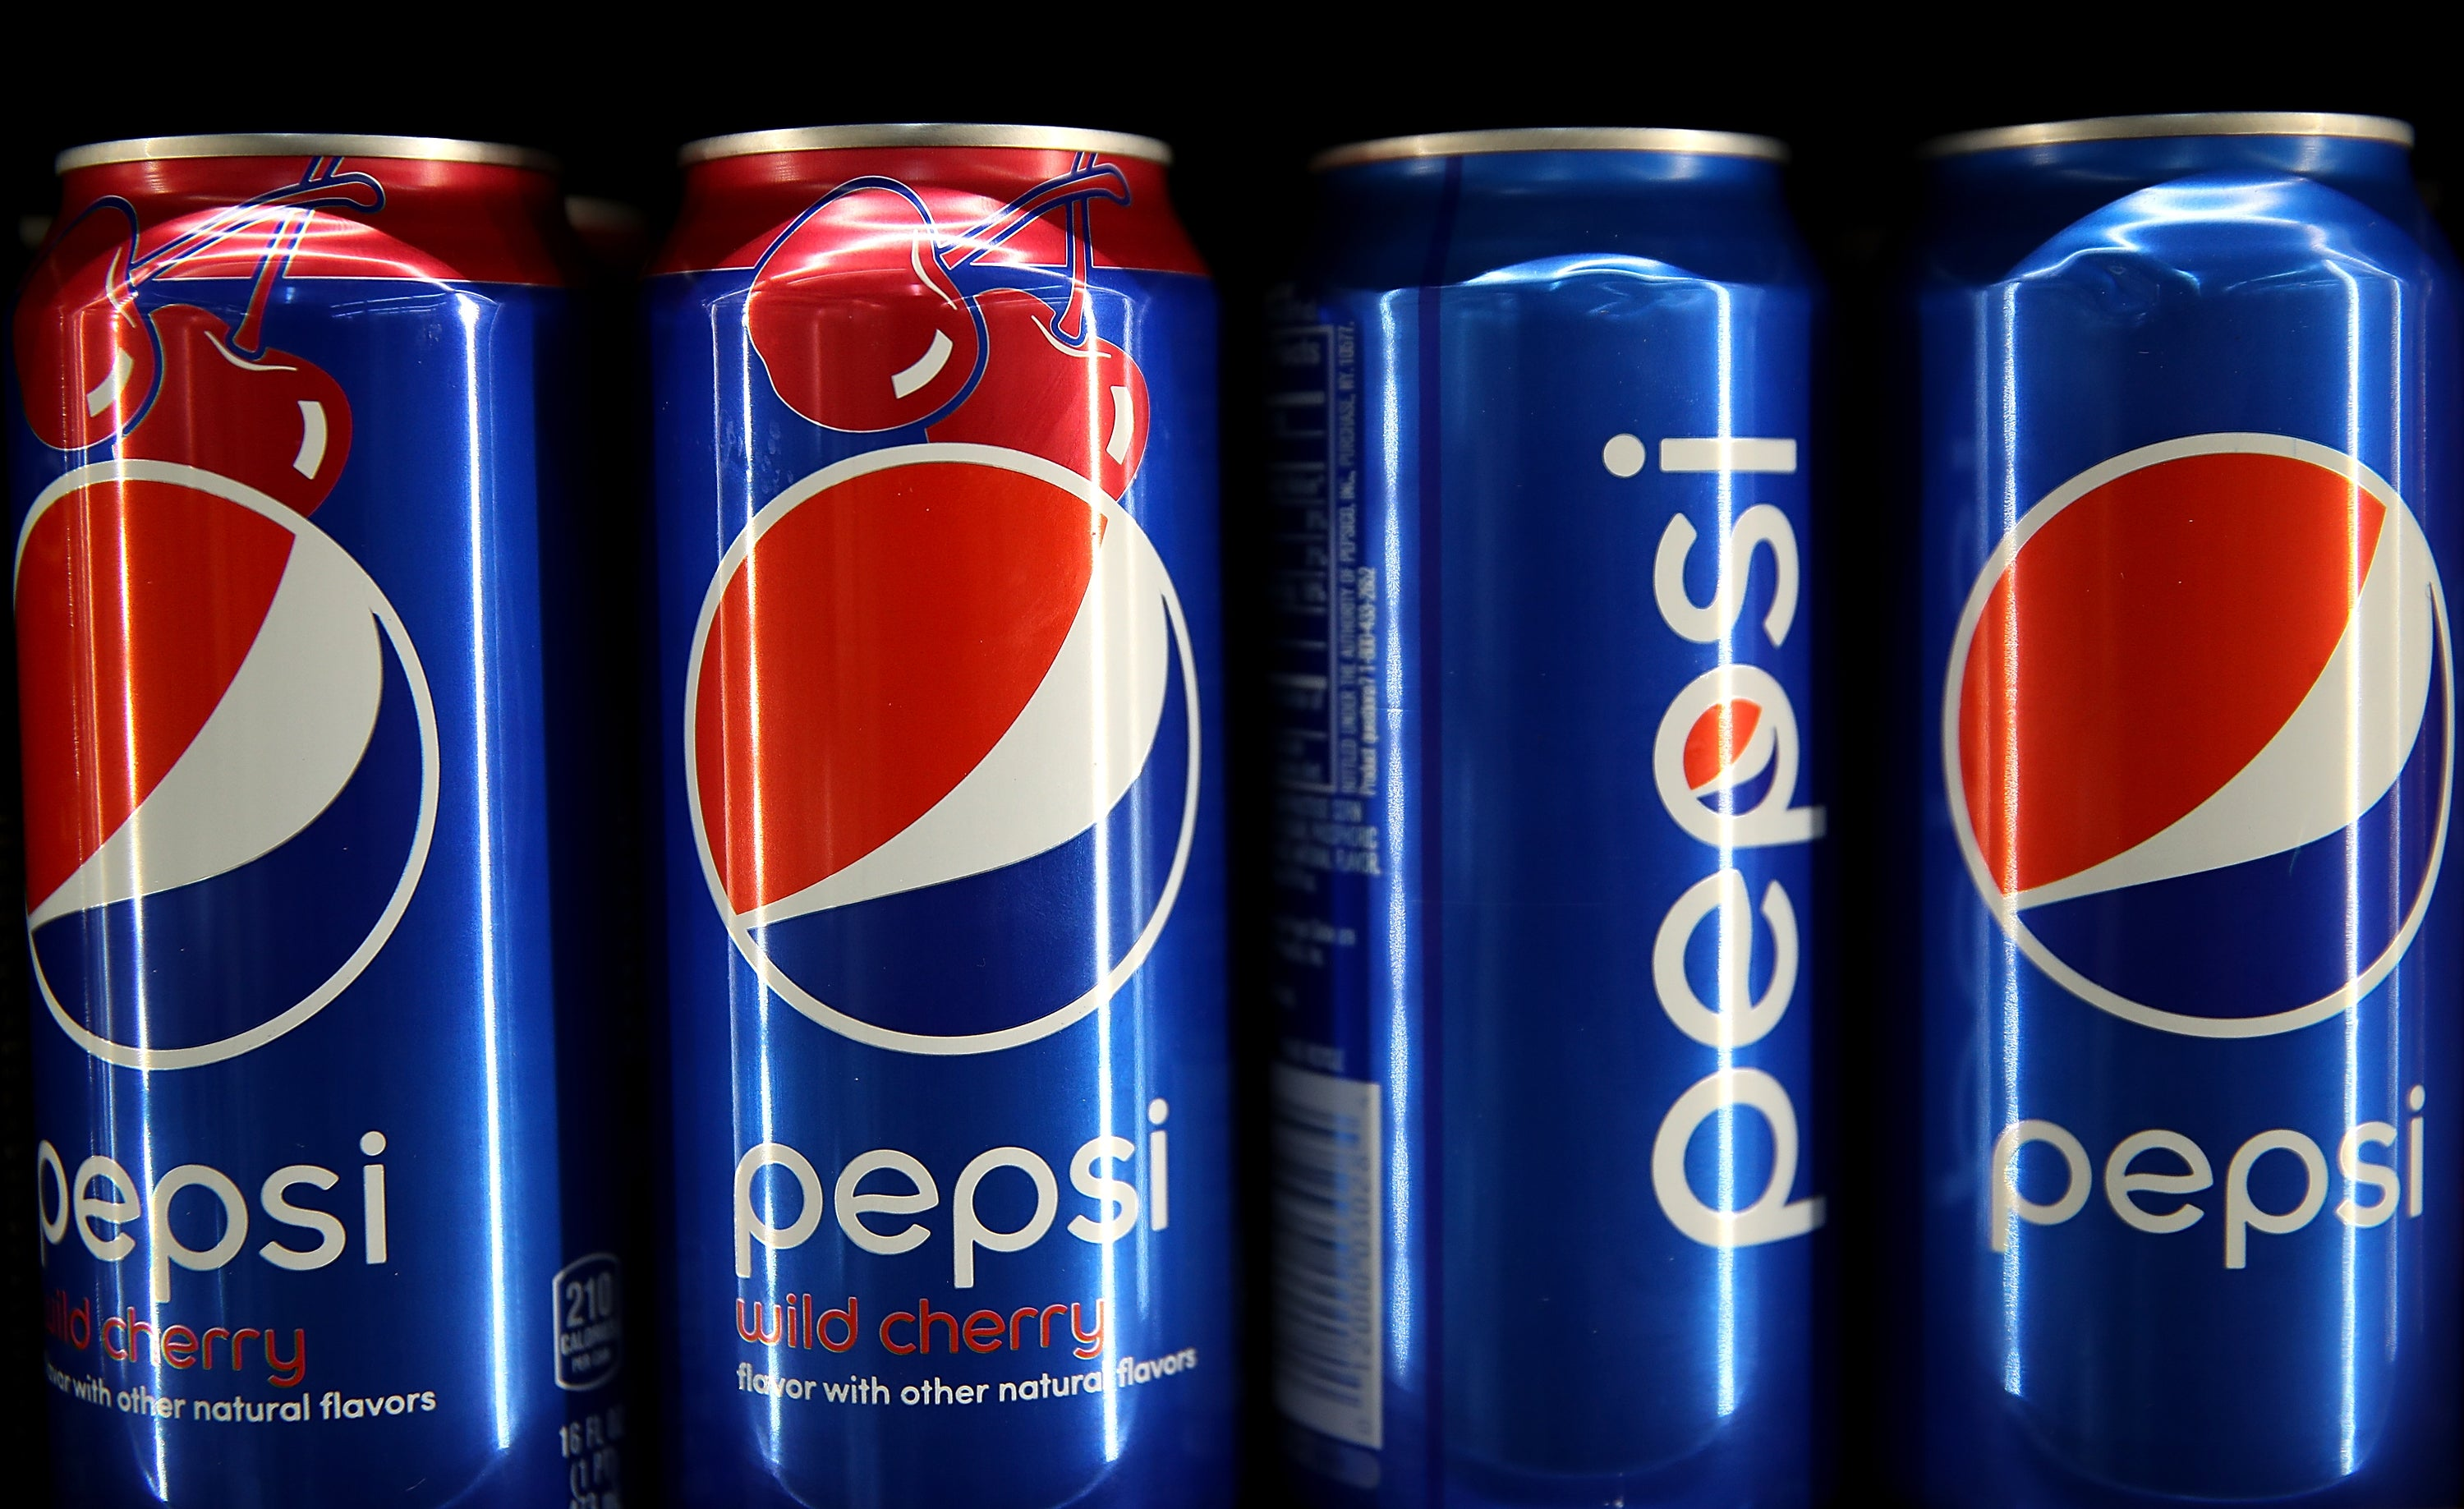 PepsiCo Is 'Relentlessly Automating' Its Workforce And It's Even More Dystopian Than It Sounds